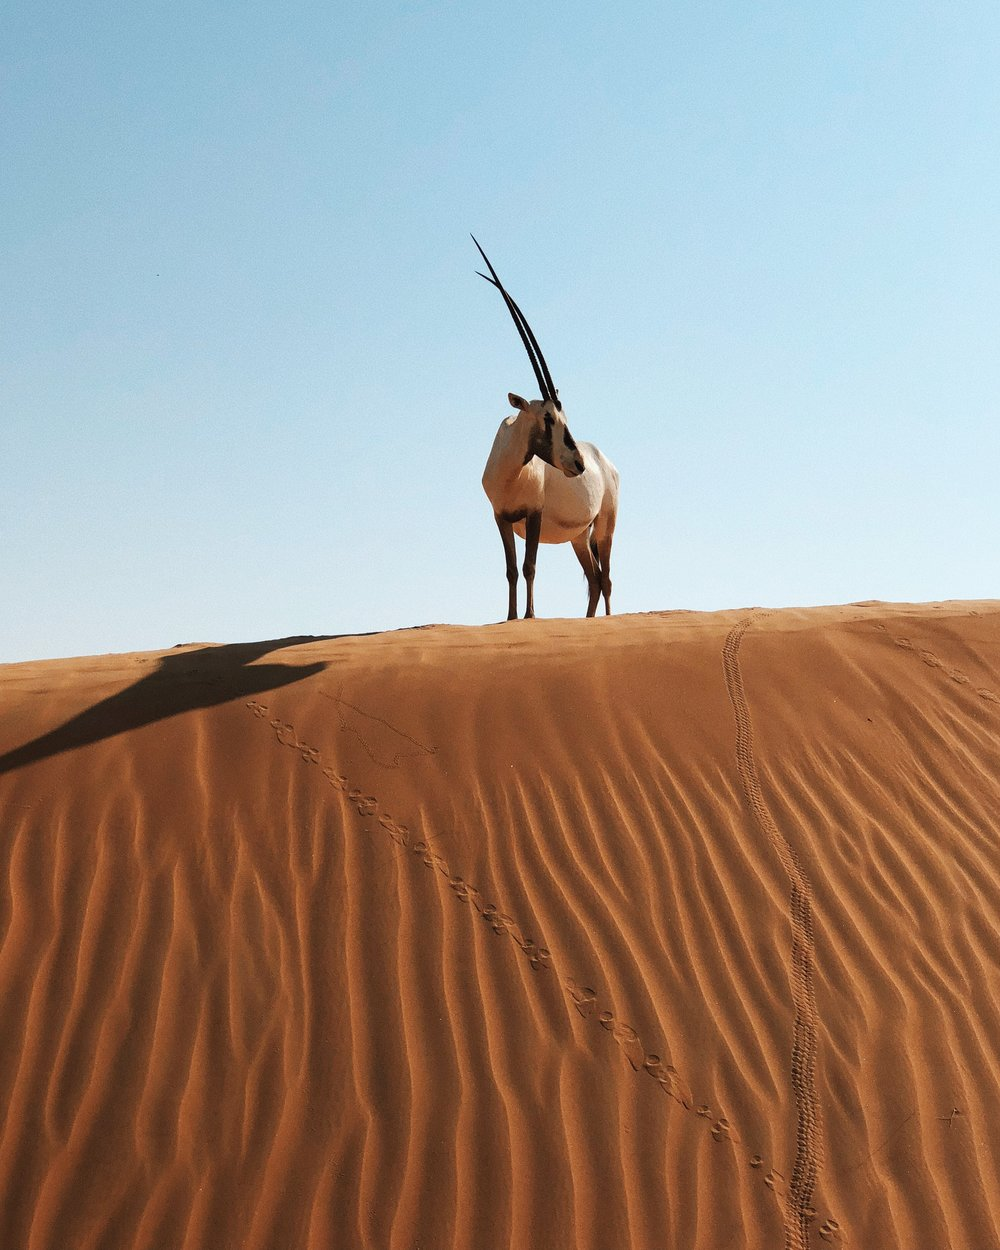 oryx // desert safari // visit Dubai // Travel Blog // The Style Sauce